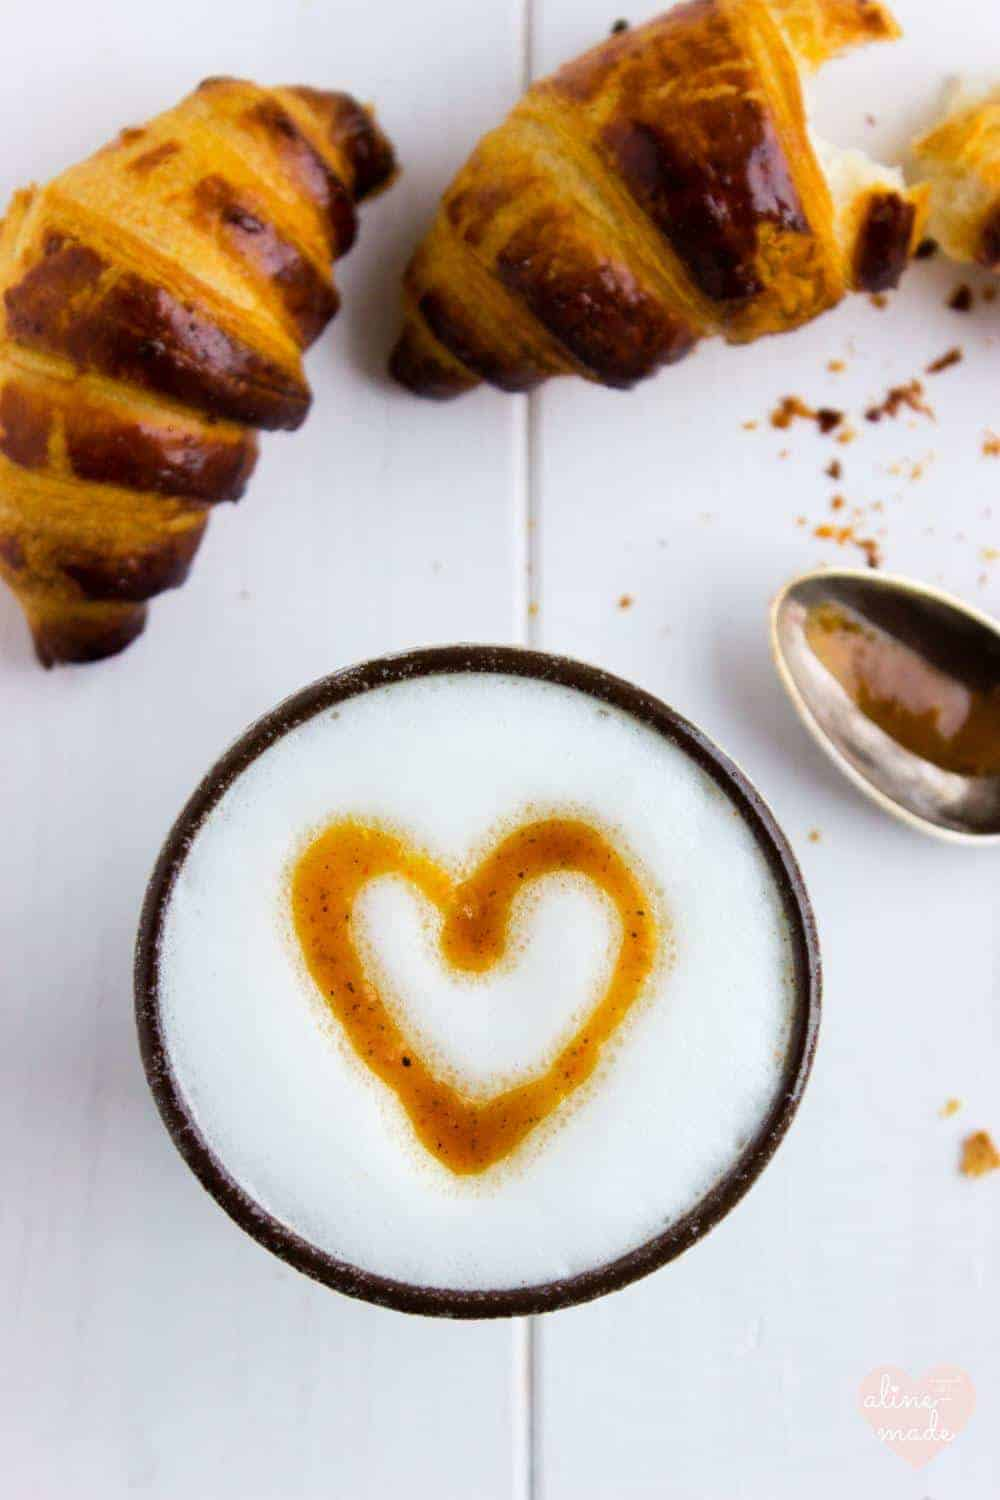 Pumpkin Spice Latte with a heart shape on the milk foam and croissants